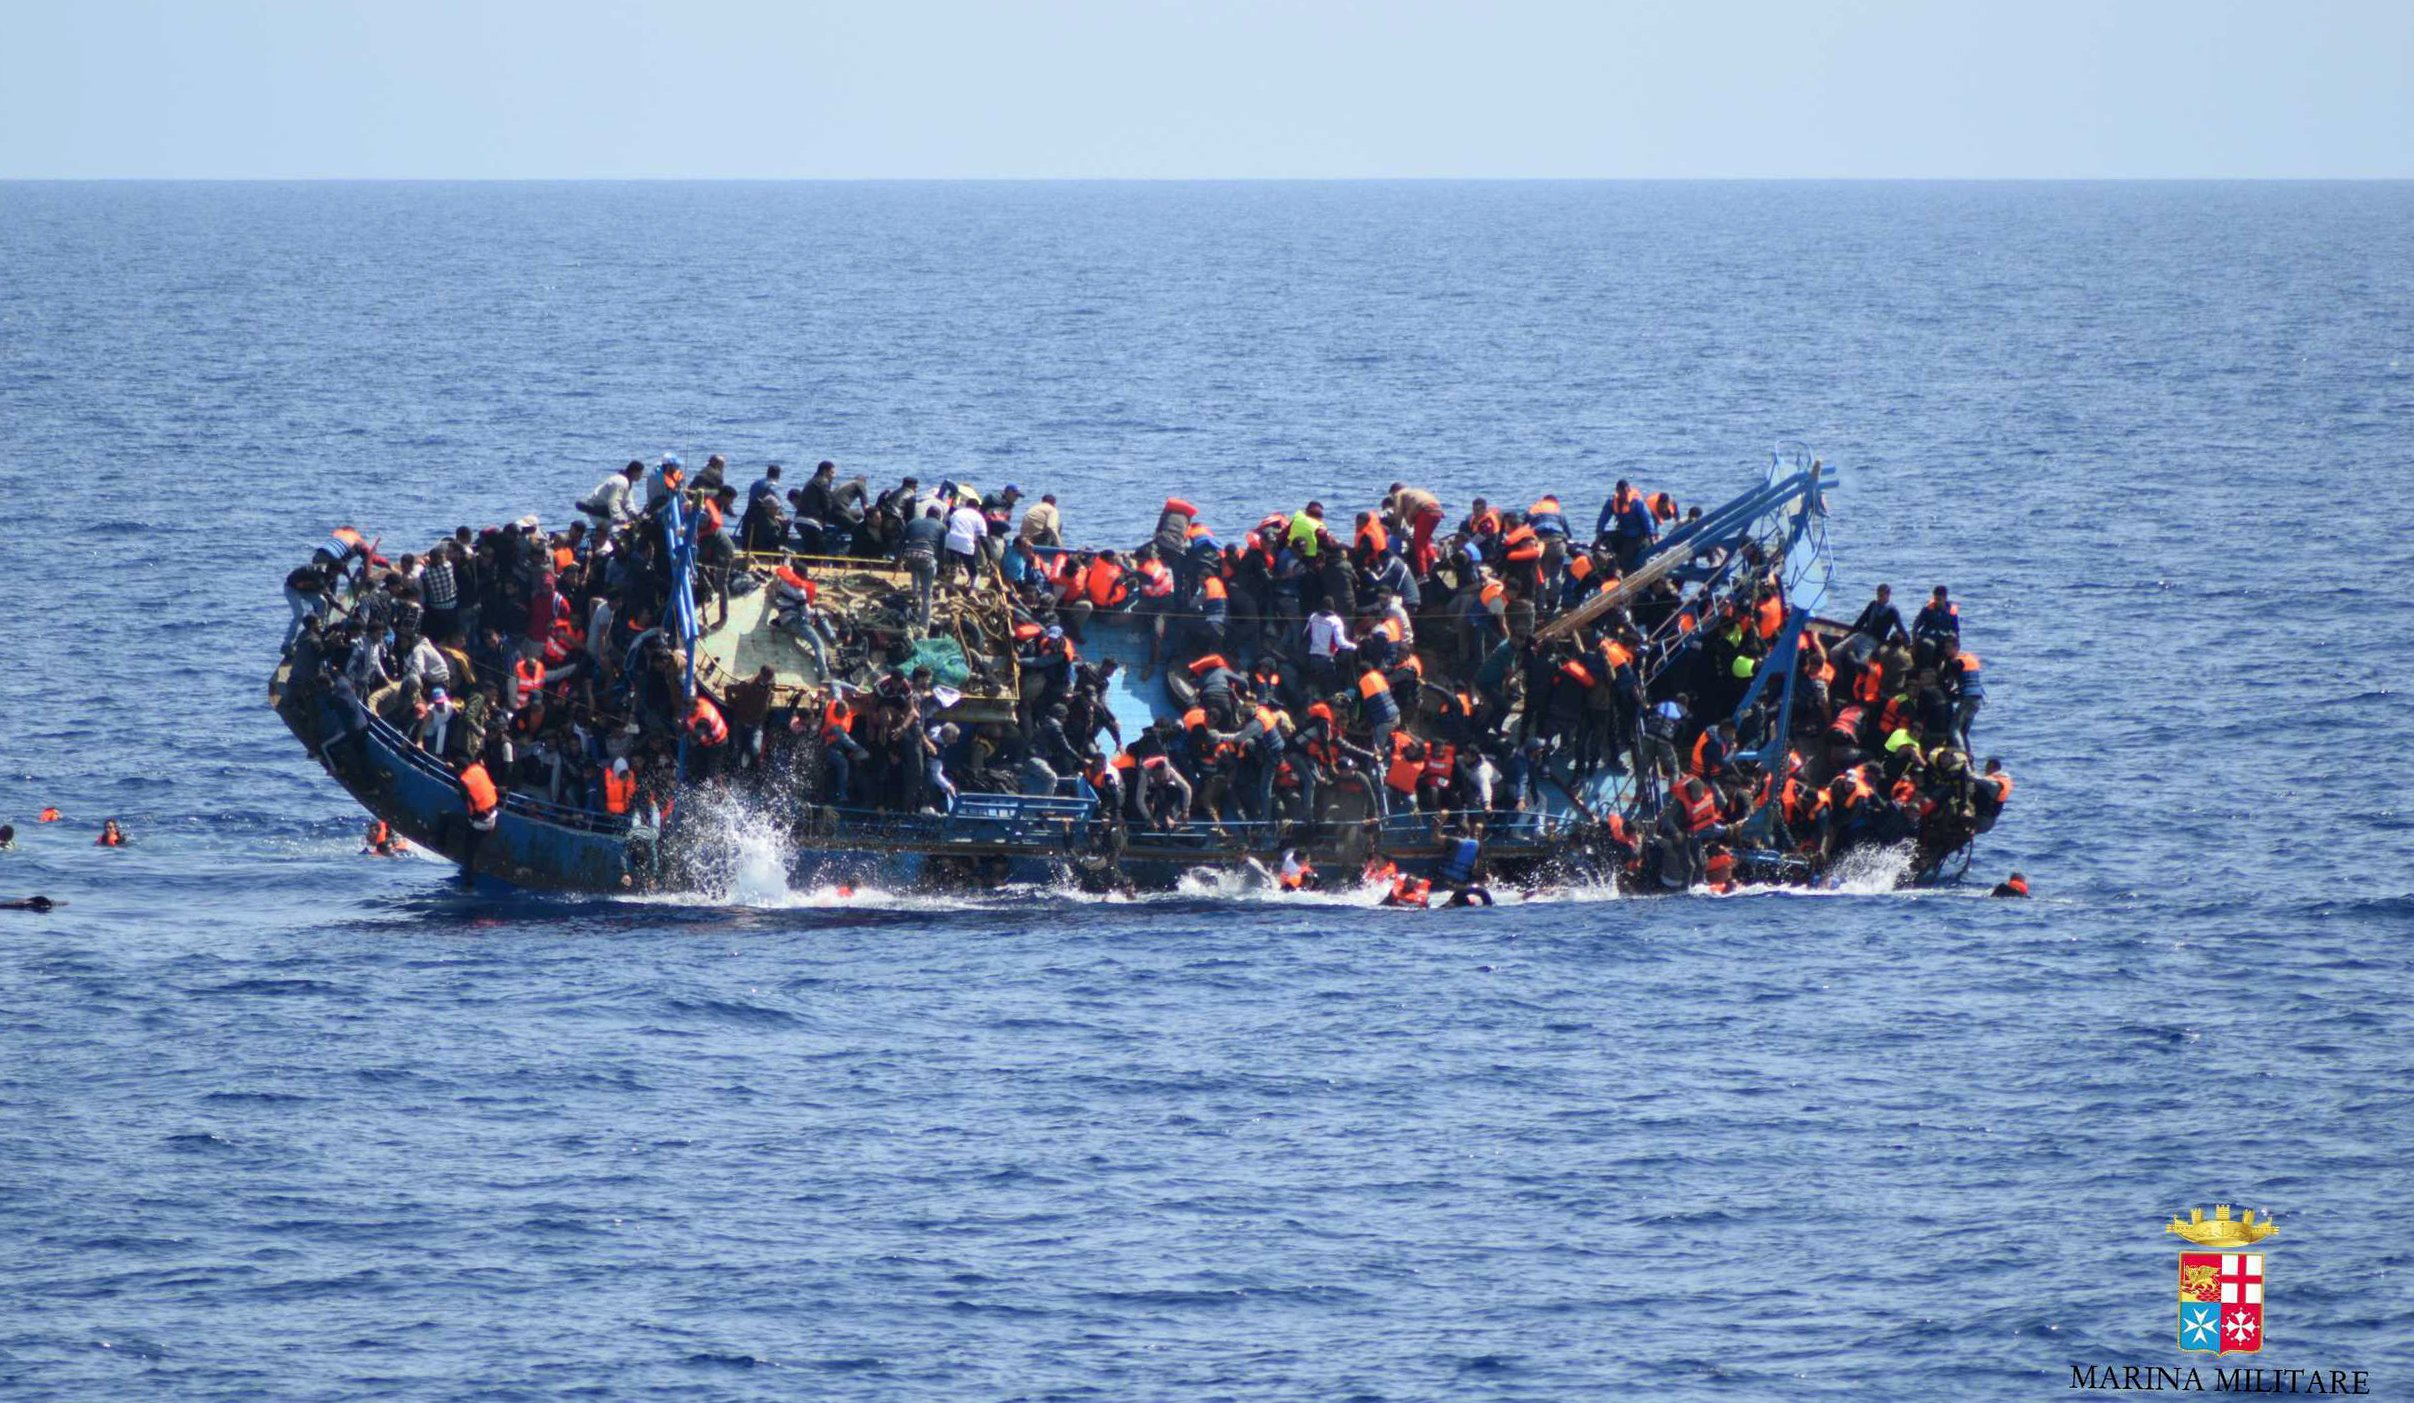 More than 880 migrants died in the Med last week. FILE - In this May 25, 2016 file photo made available by the Italian Navy, people try to jump in the water right before their boat overturns off the Libyan coast. Over 700 migrants are feared dead in three Mediterranean Sea shipwrecks south of Italy in the last few days as they tried desperately to reach Europe in unseaworthy smuggling boats, the U.N. refugee agency said Sunday, May 29, 2016. (Italian navy via AP Photo, file)